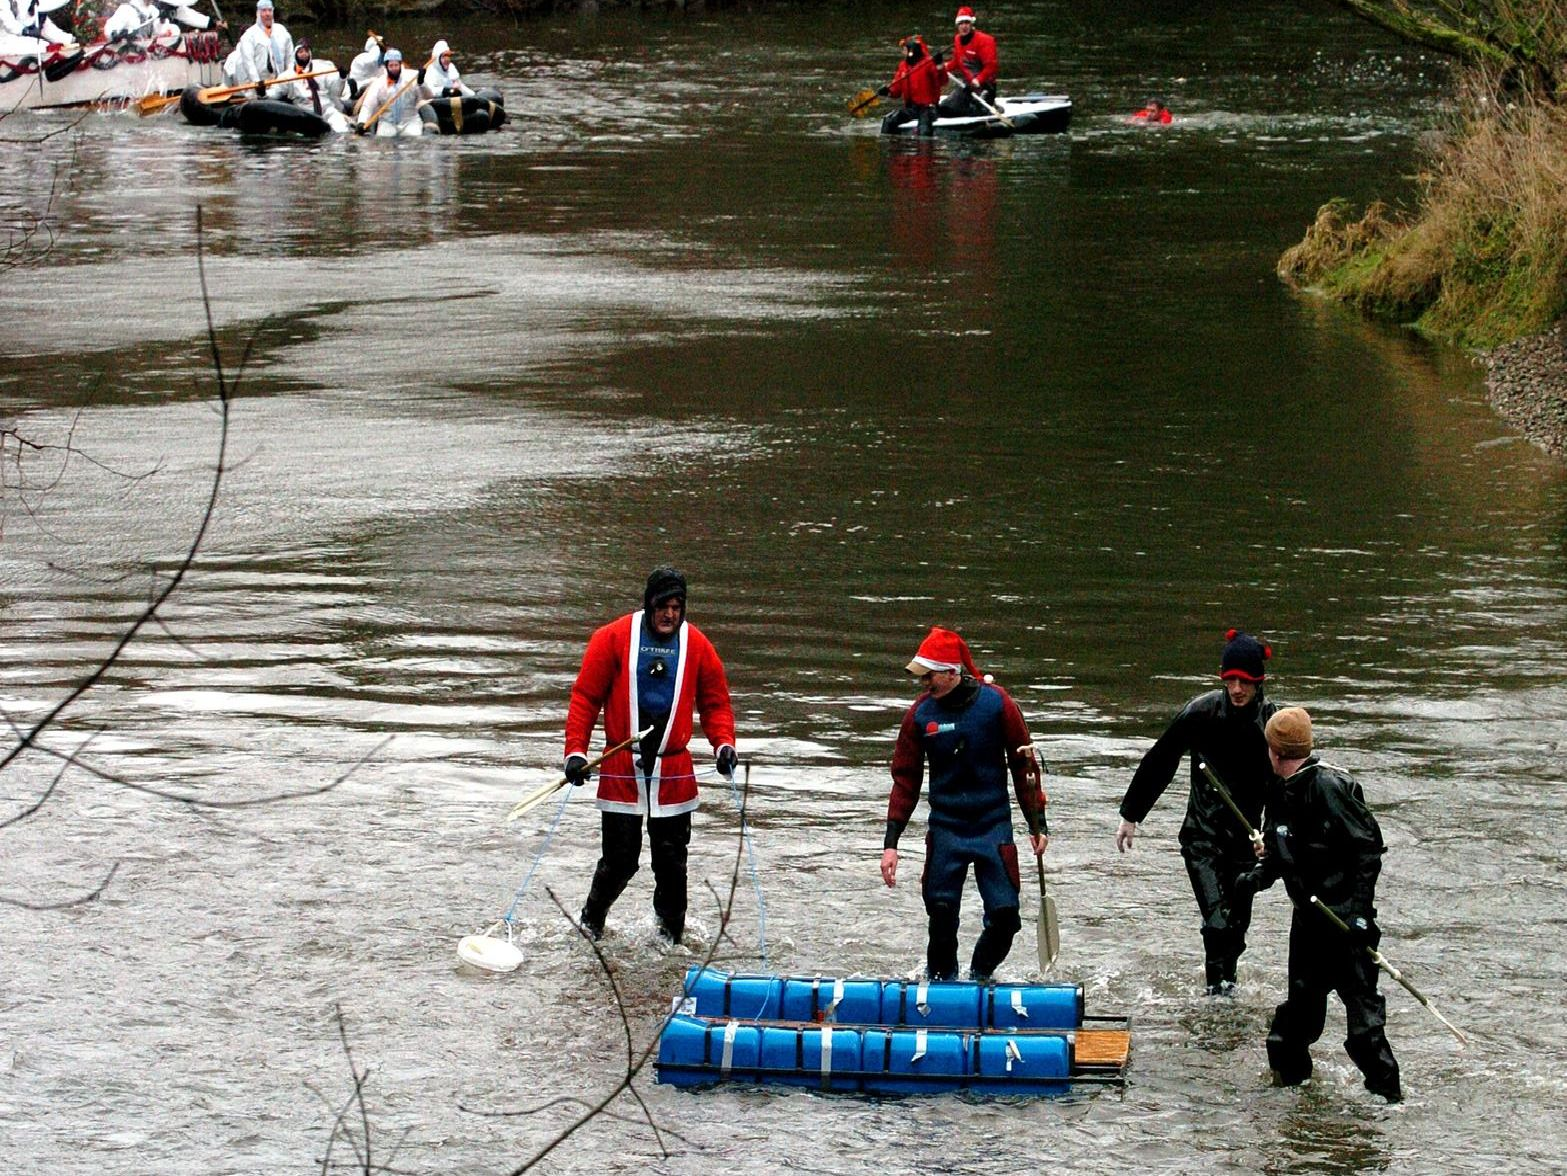 2003: Splashing about in the river, as the annual Boxing Day raft race starts in Matlock and goes down the River Derwent to Cromford, after passing through Matlock Bath.